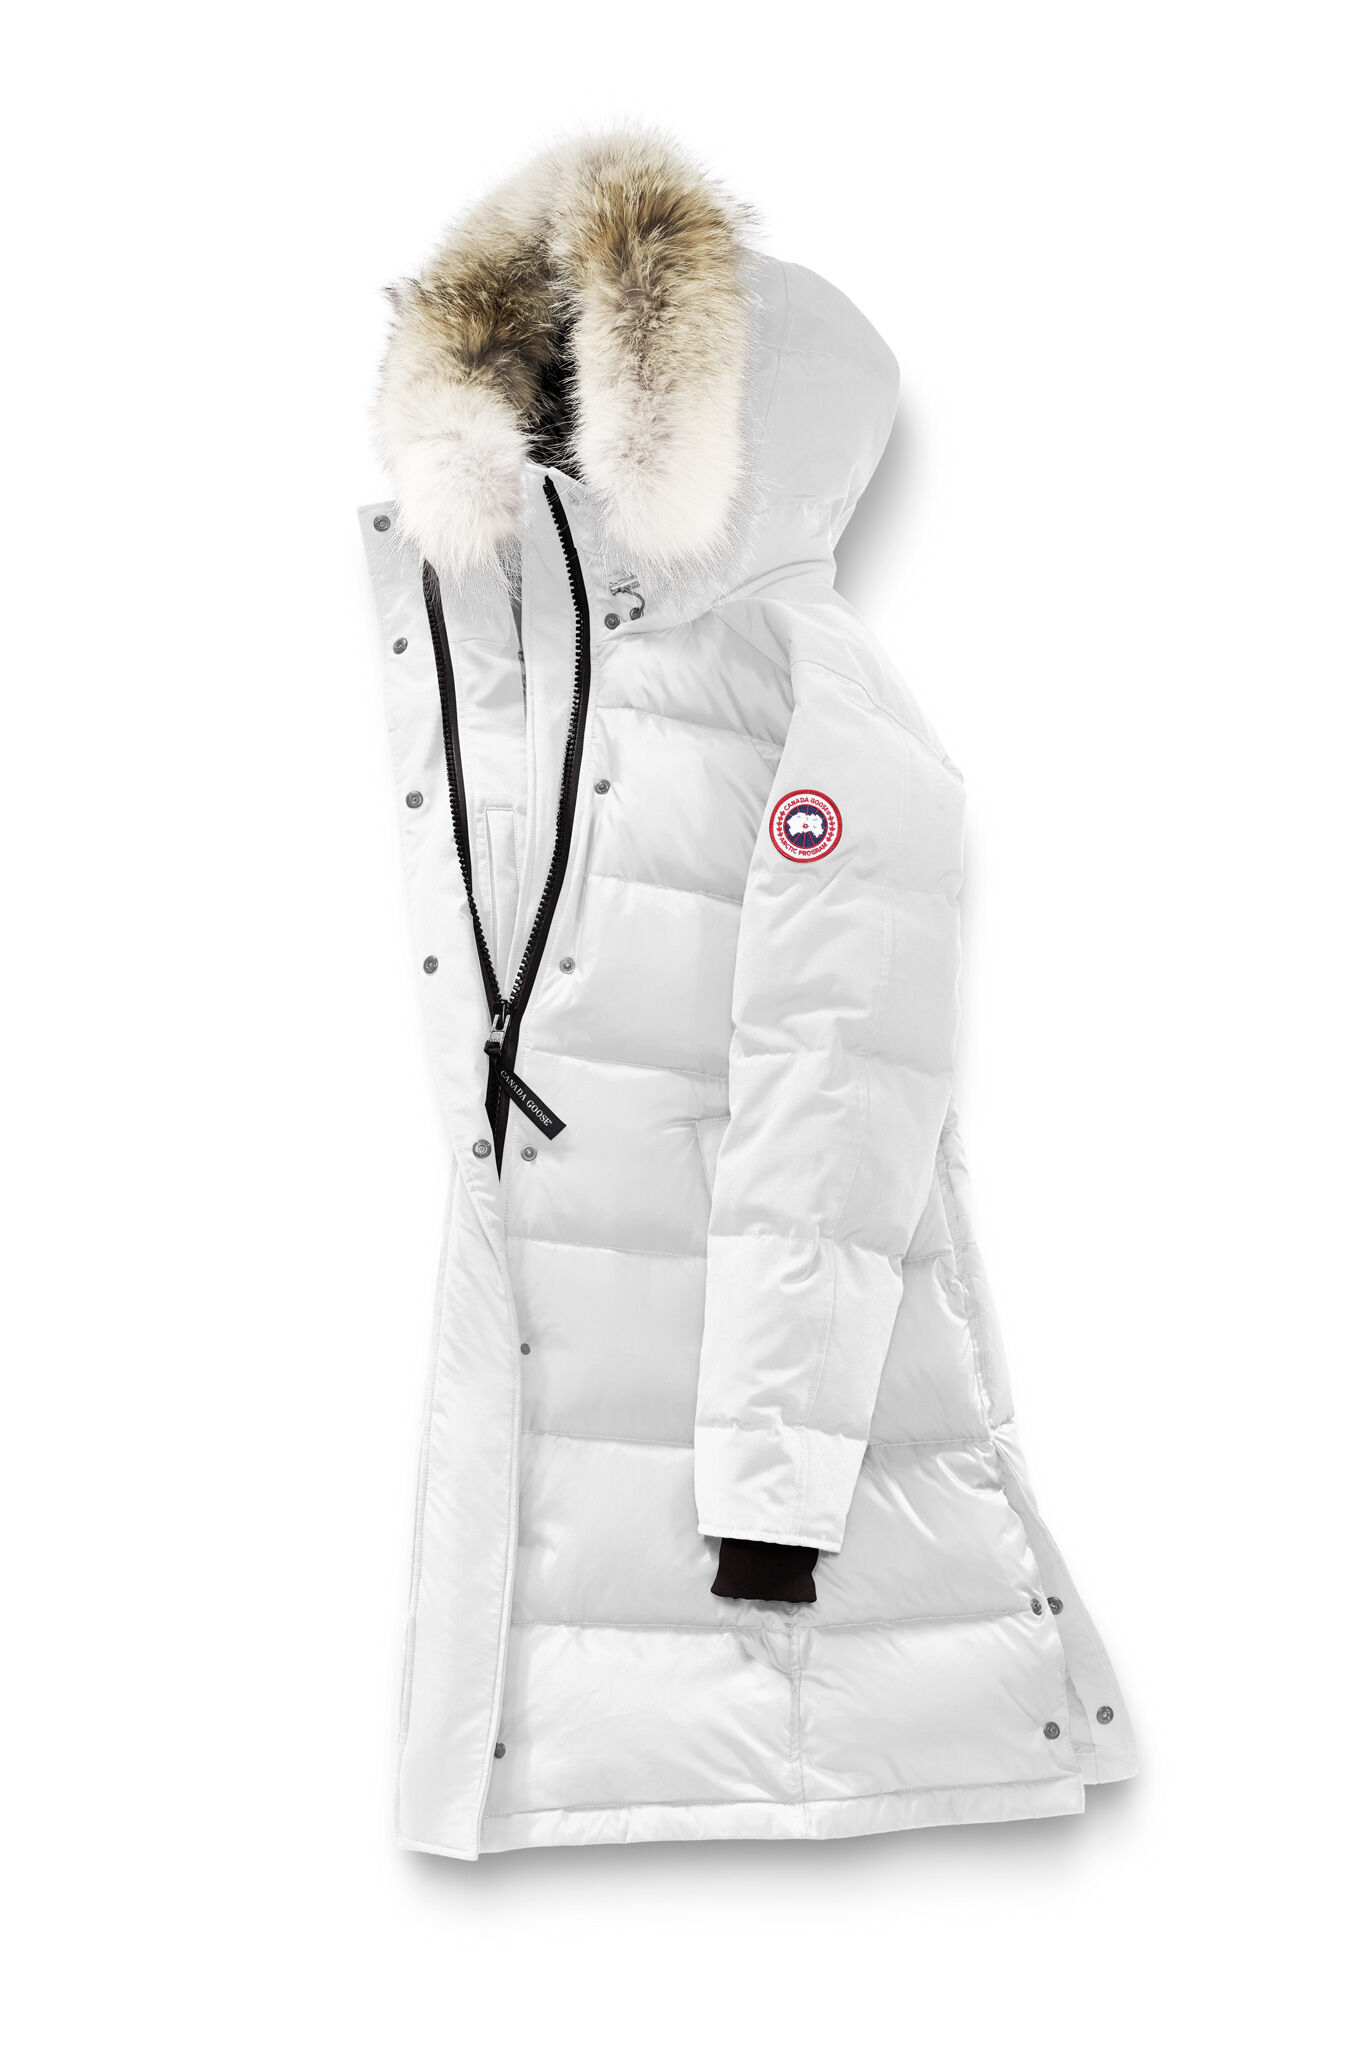 White parka with fur hood